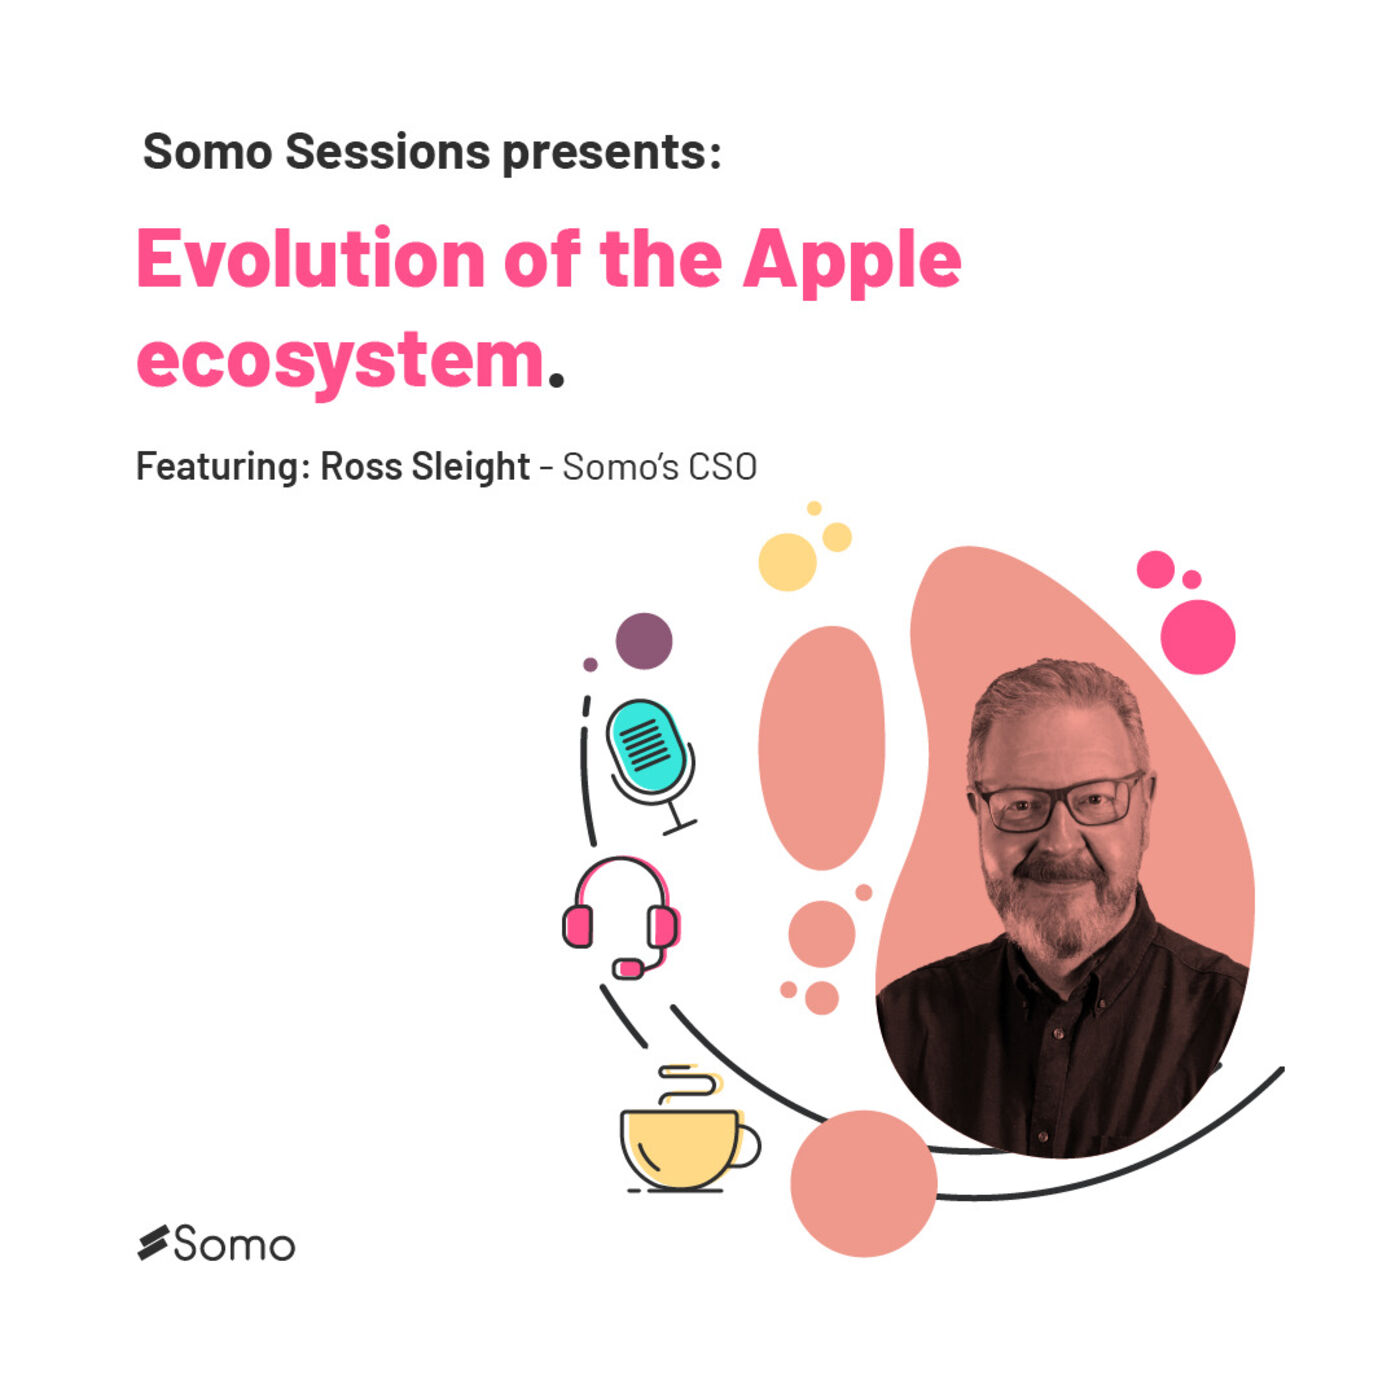 1. Evolution of the Apple ecosystem, with Ross Sleight